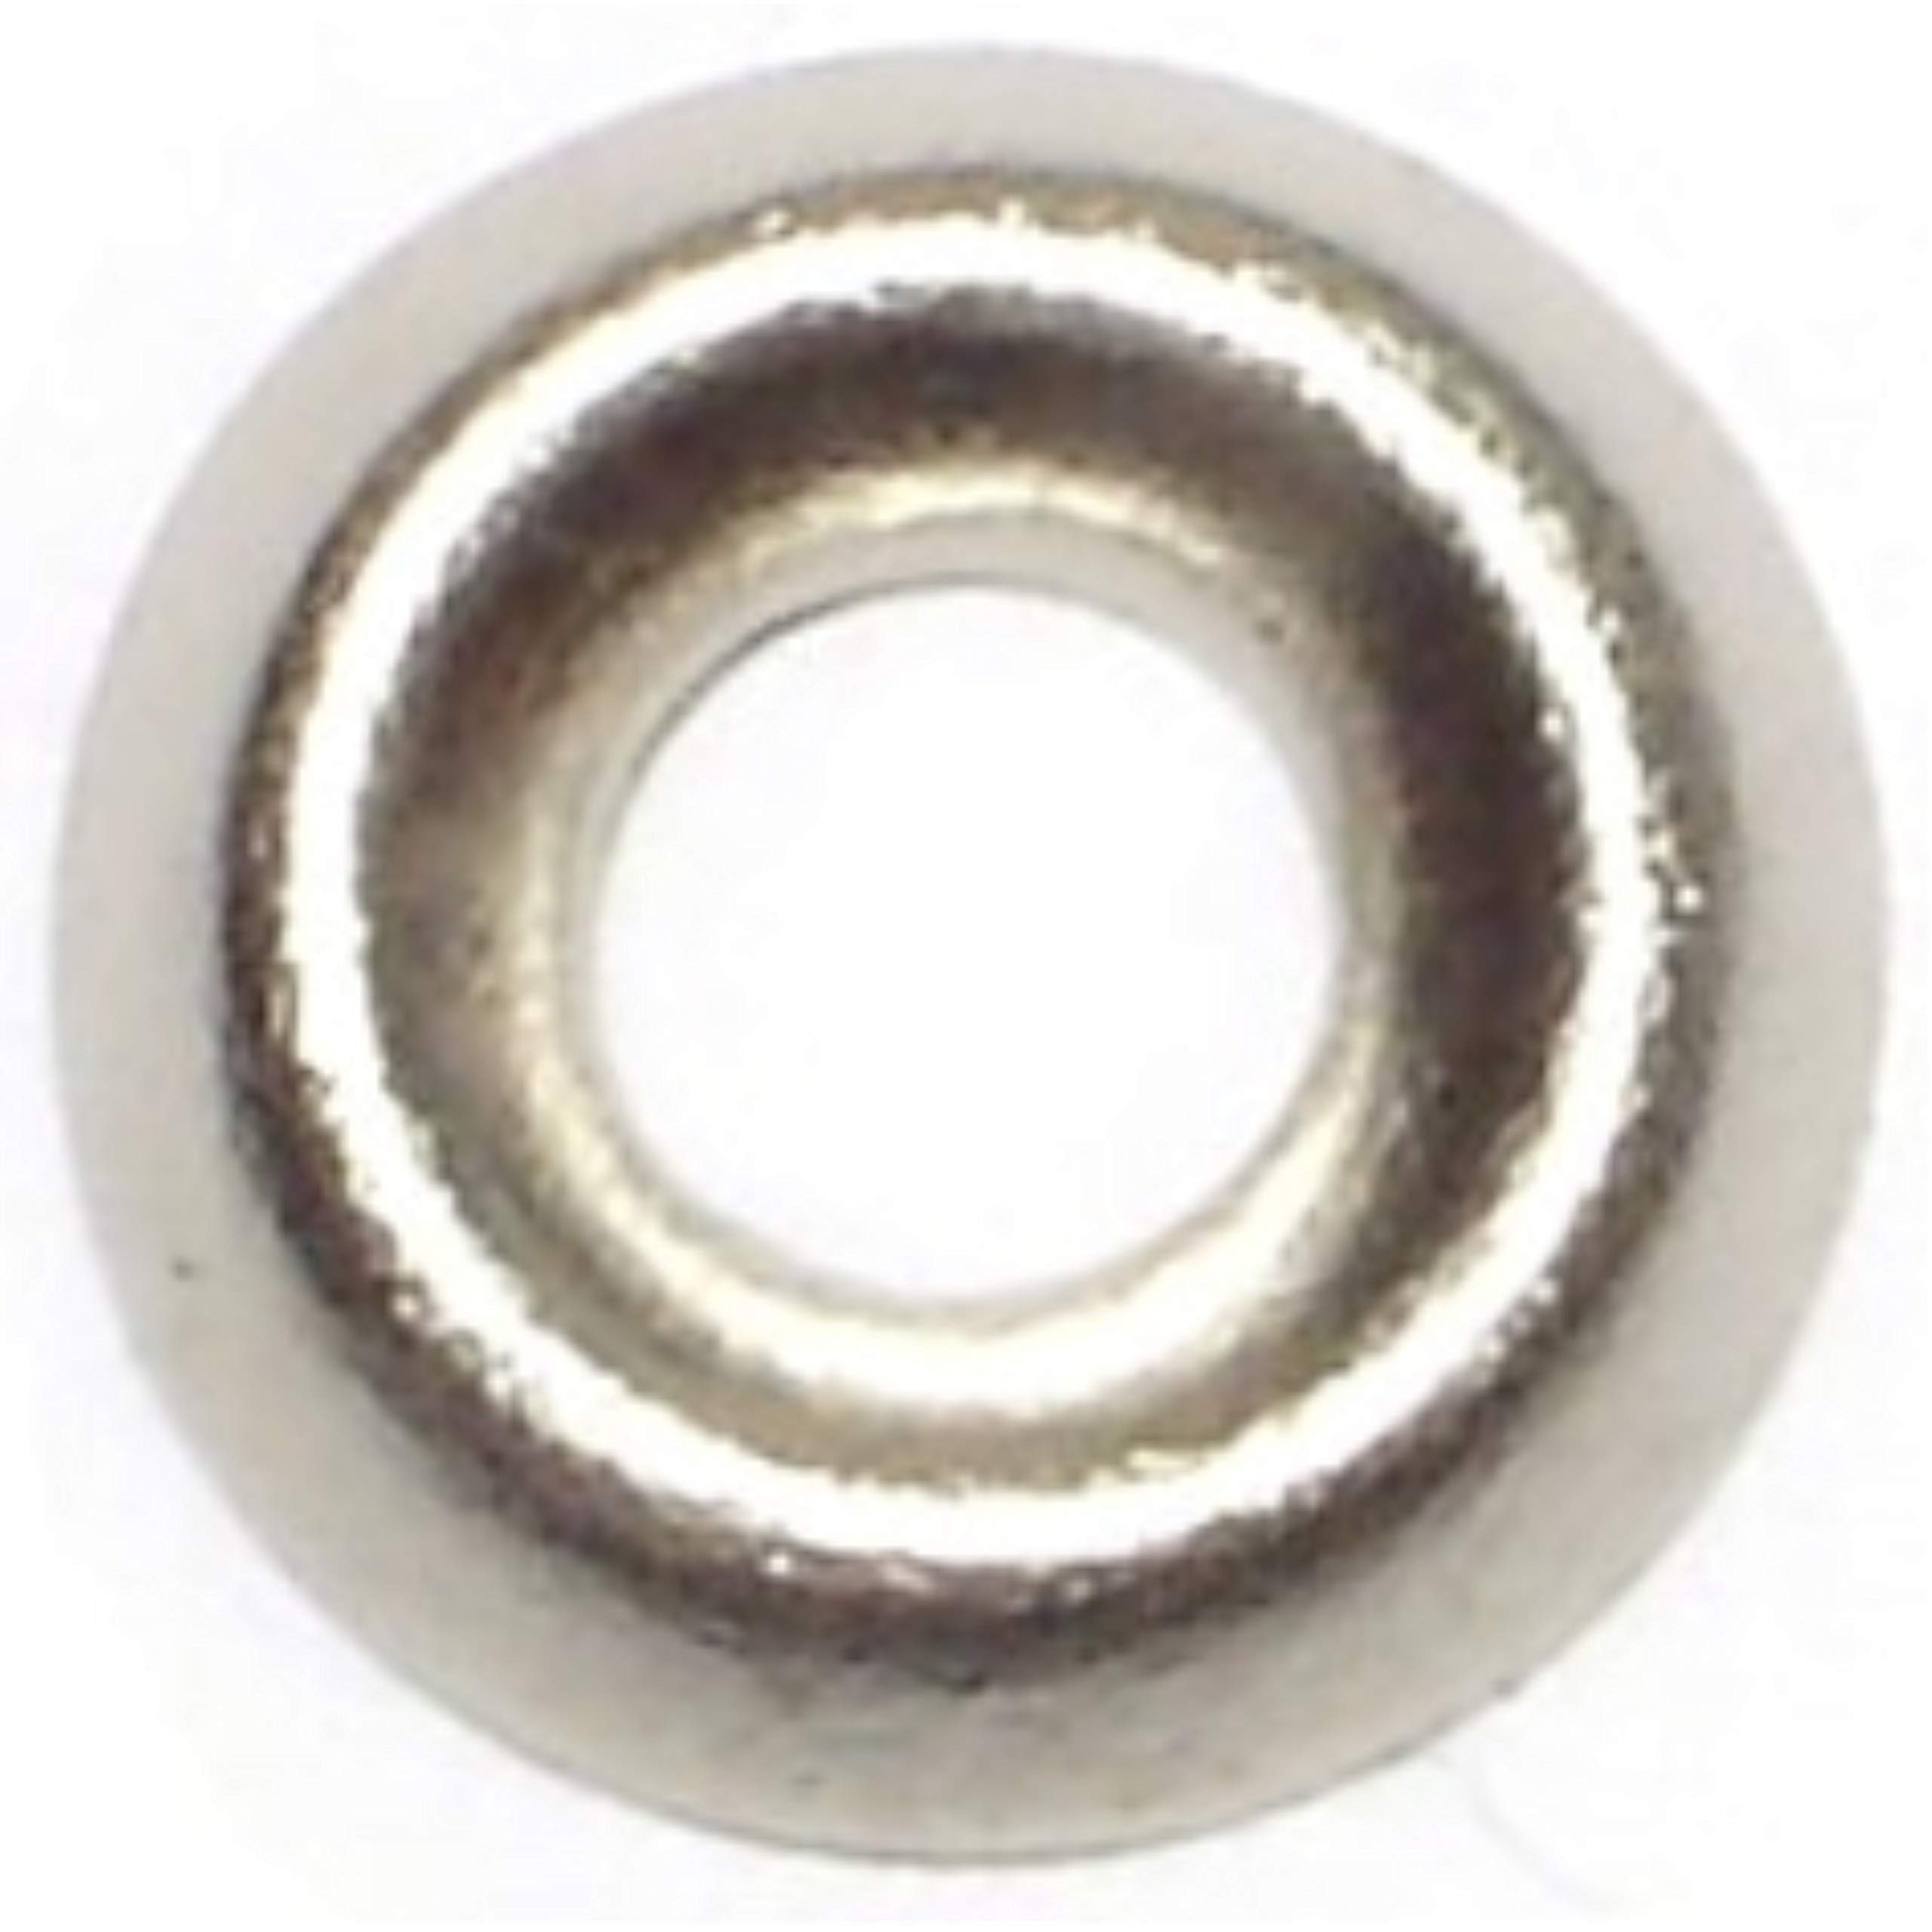 Hard-to-Find Fastener 1 04973242329 Finishing Washers (Pack of 80)